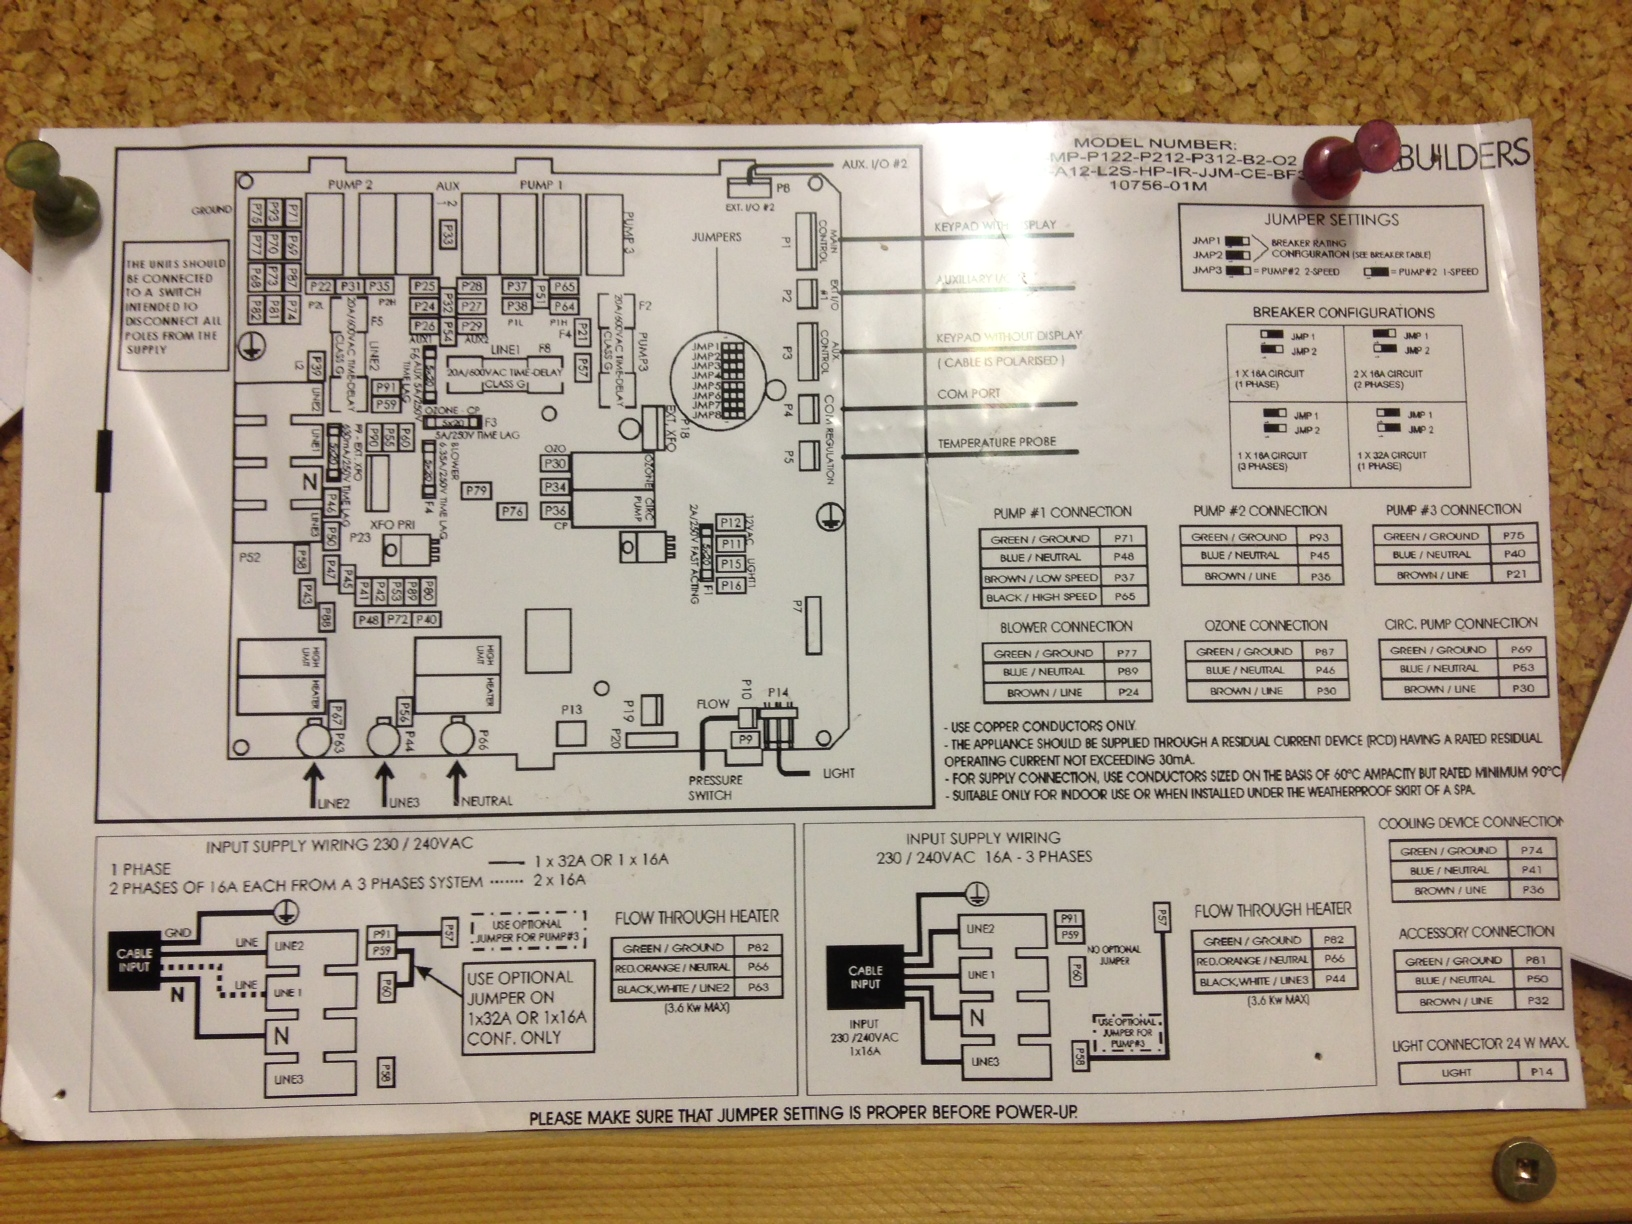 Wiring A Sauna Auto Electrical Diagram Arctic Spas Metapak Pcb Www Poolandspacentre Co Uk Up Heater